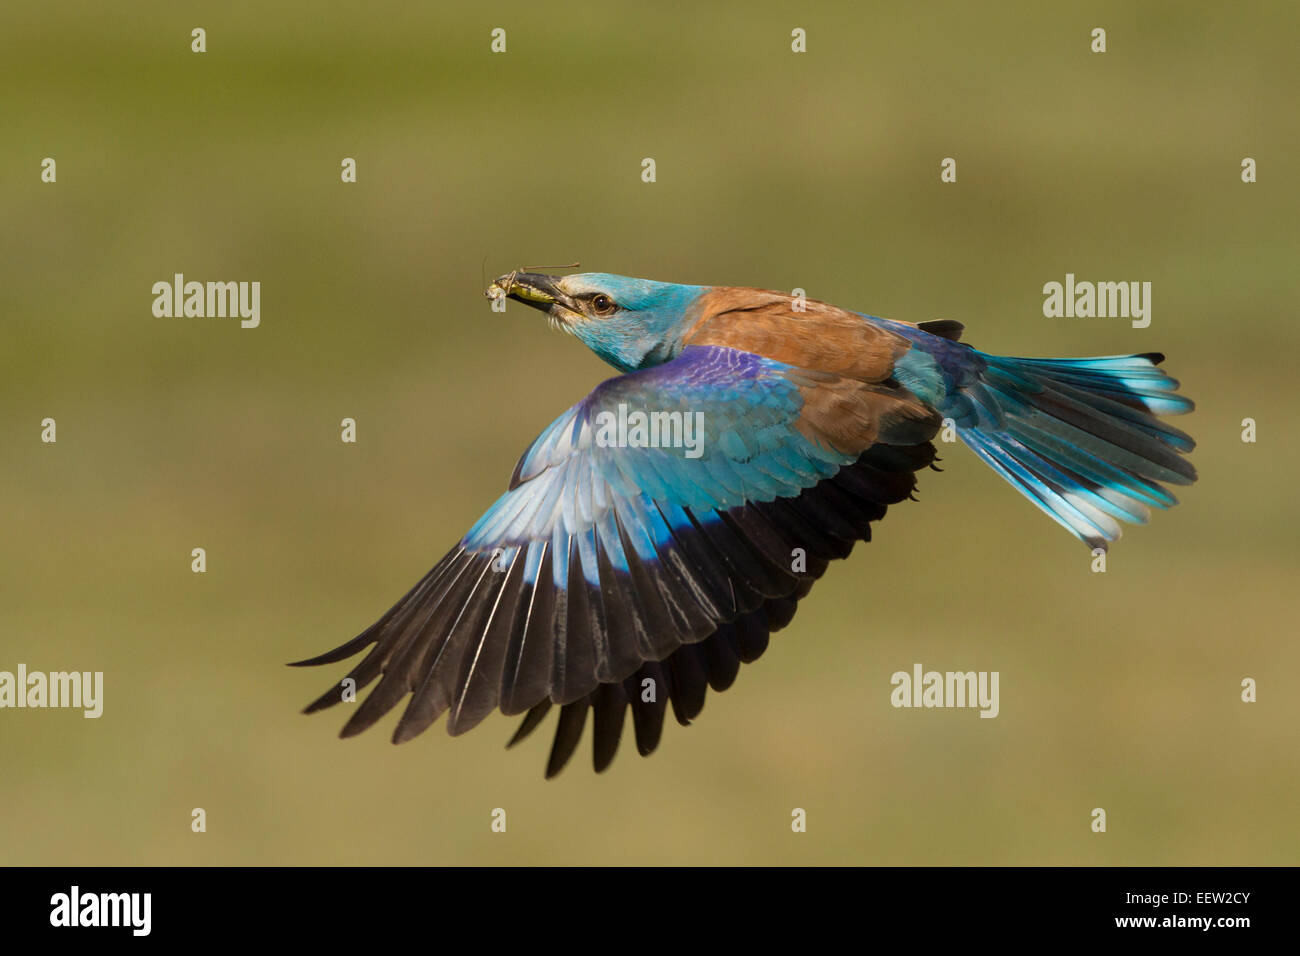 European Roller Coracias garrulus bringing food back to nest with wings outstretched flying Stock Photo